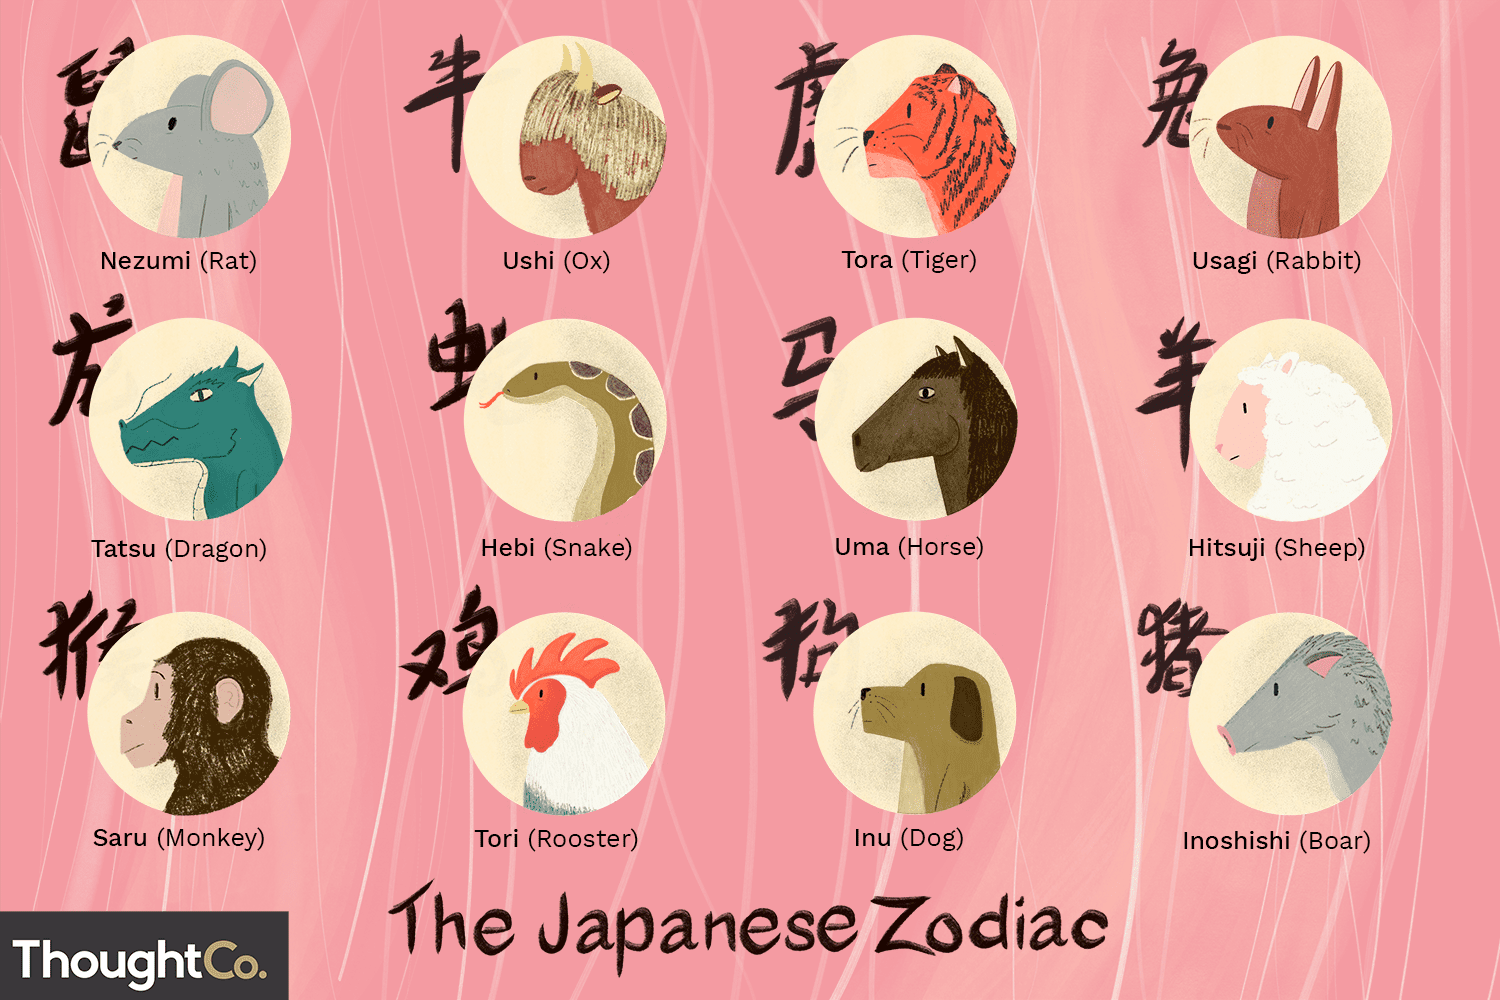 The Twelve Signs of the Japanese Zodiac (Juunishi)